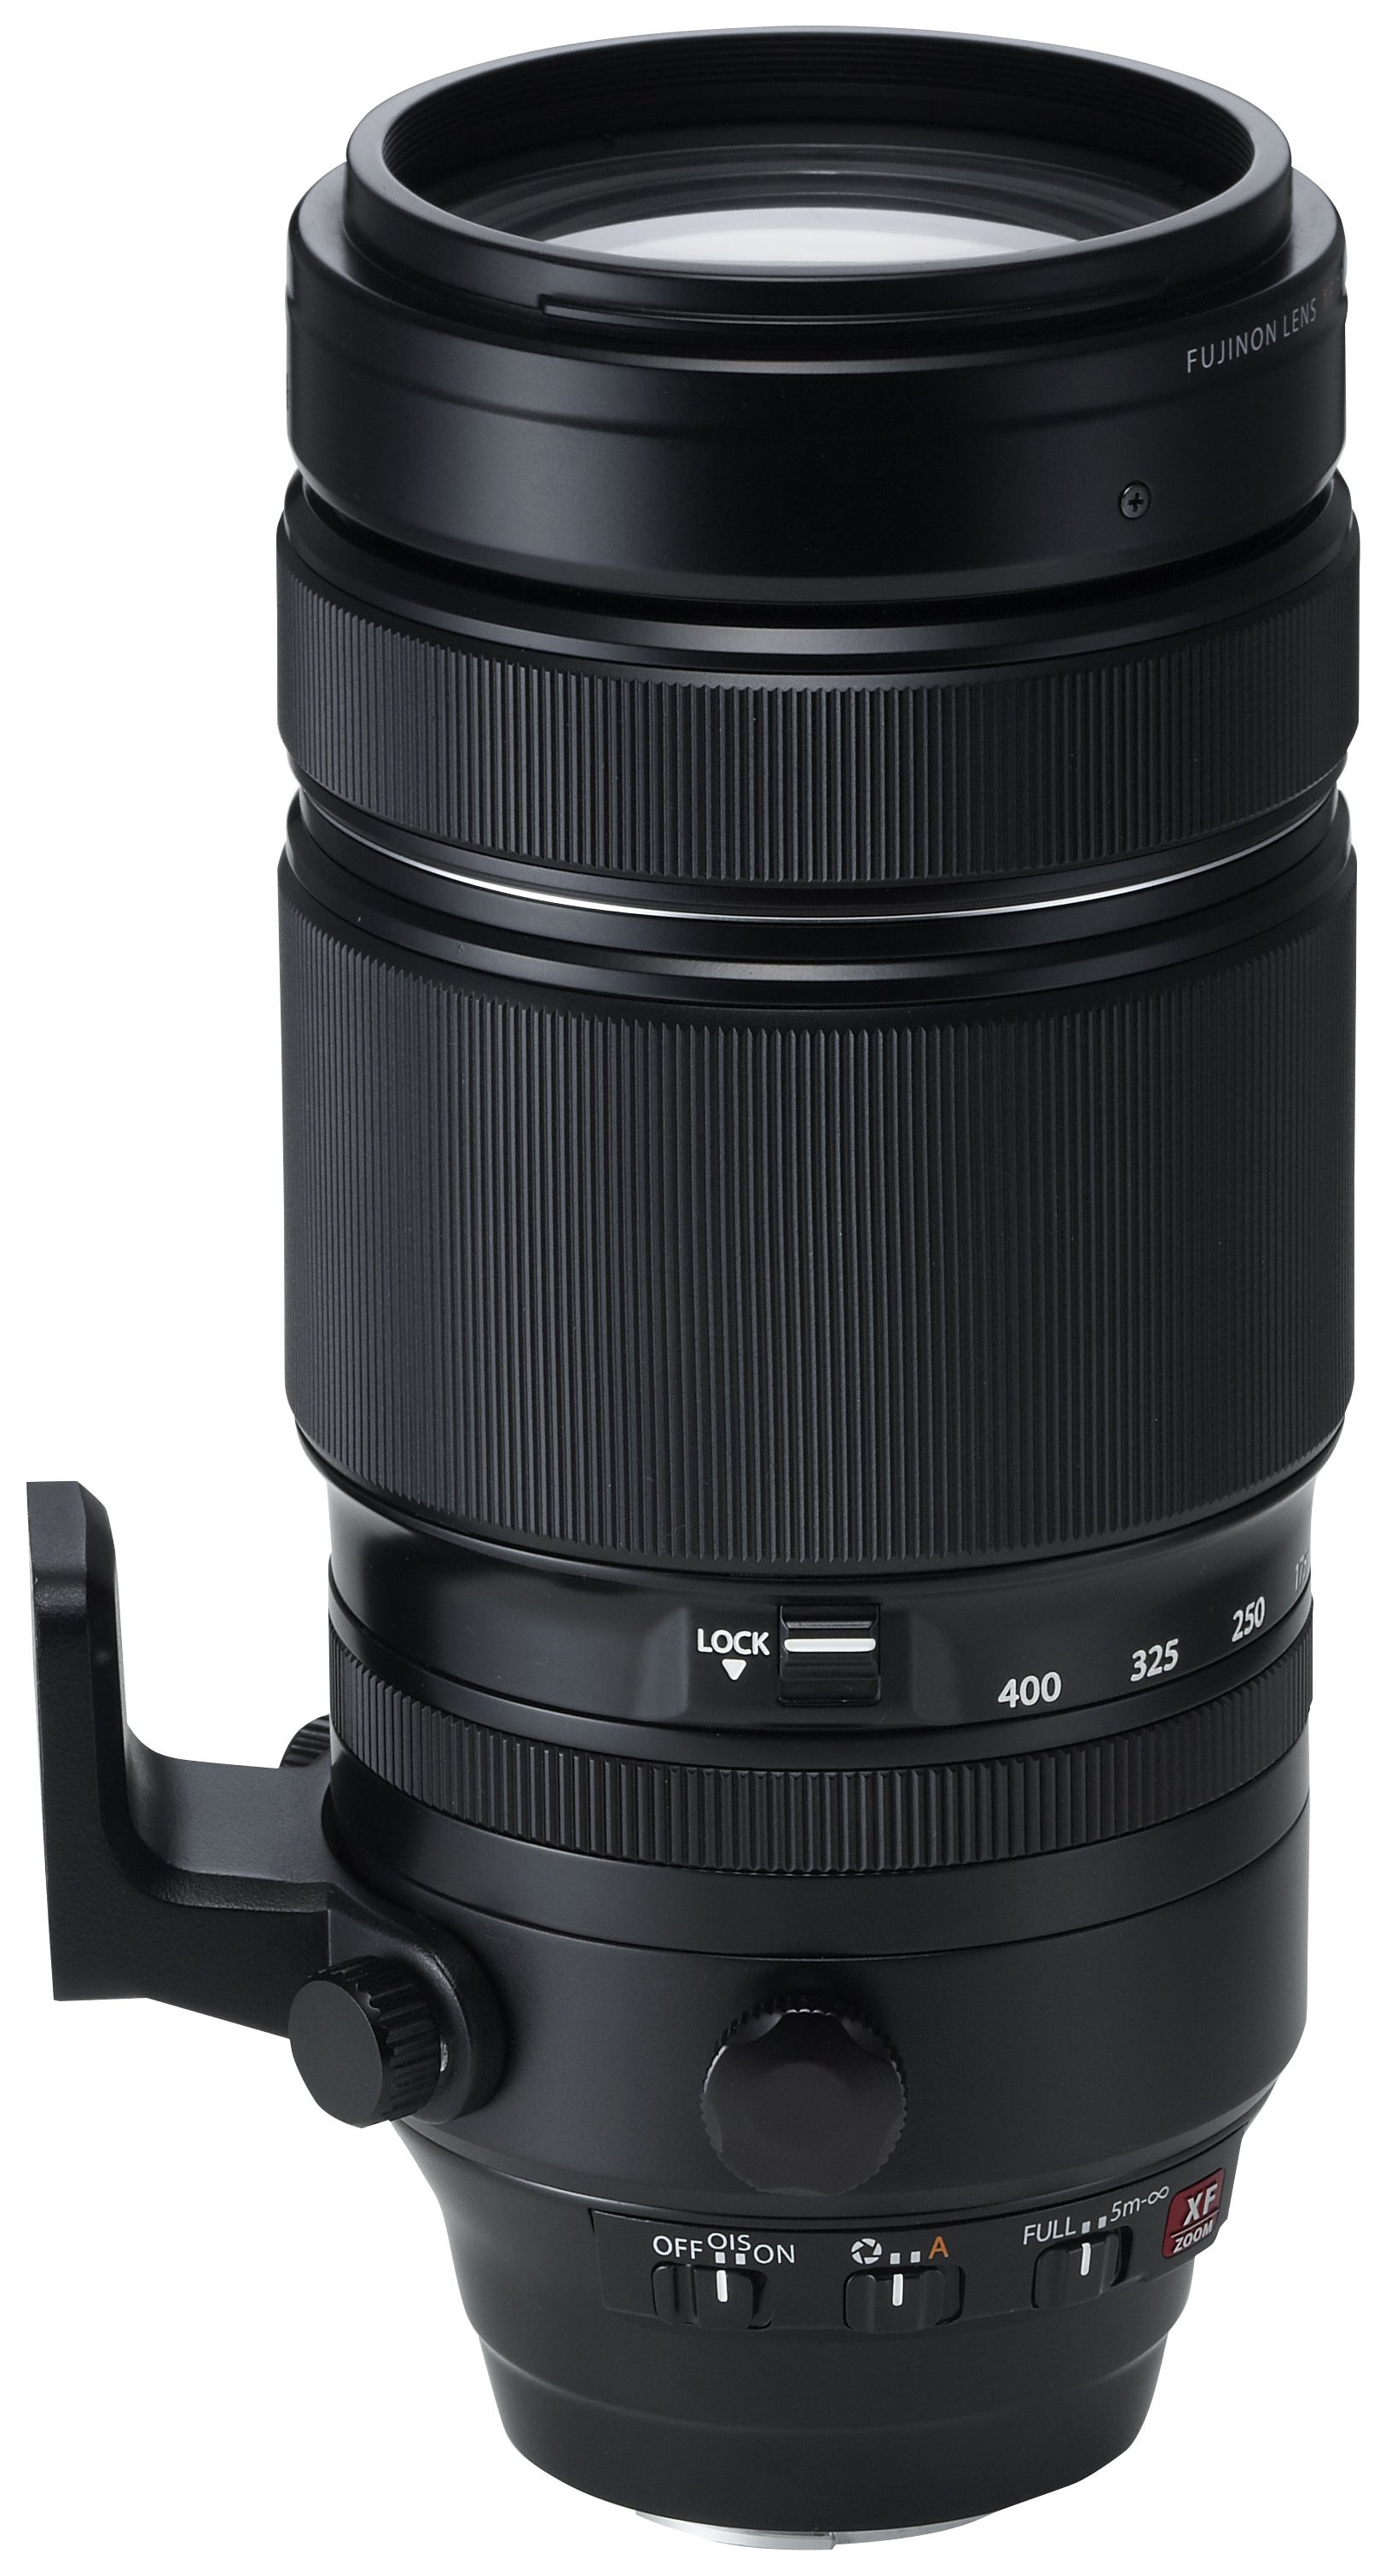 Image of Fujifilm - XF 100-400mm Lens